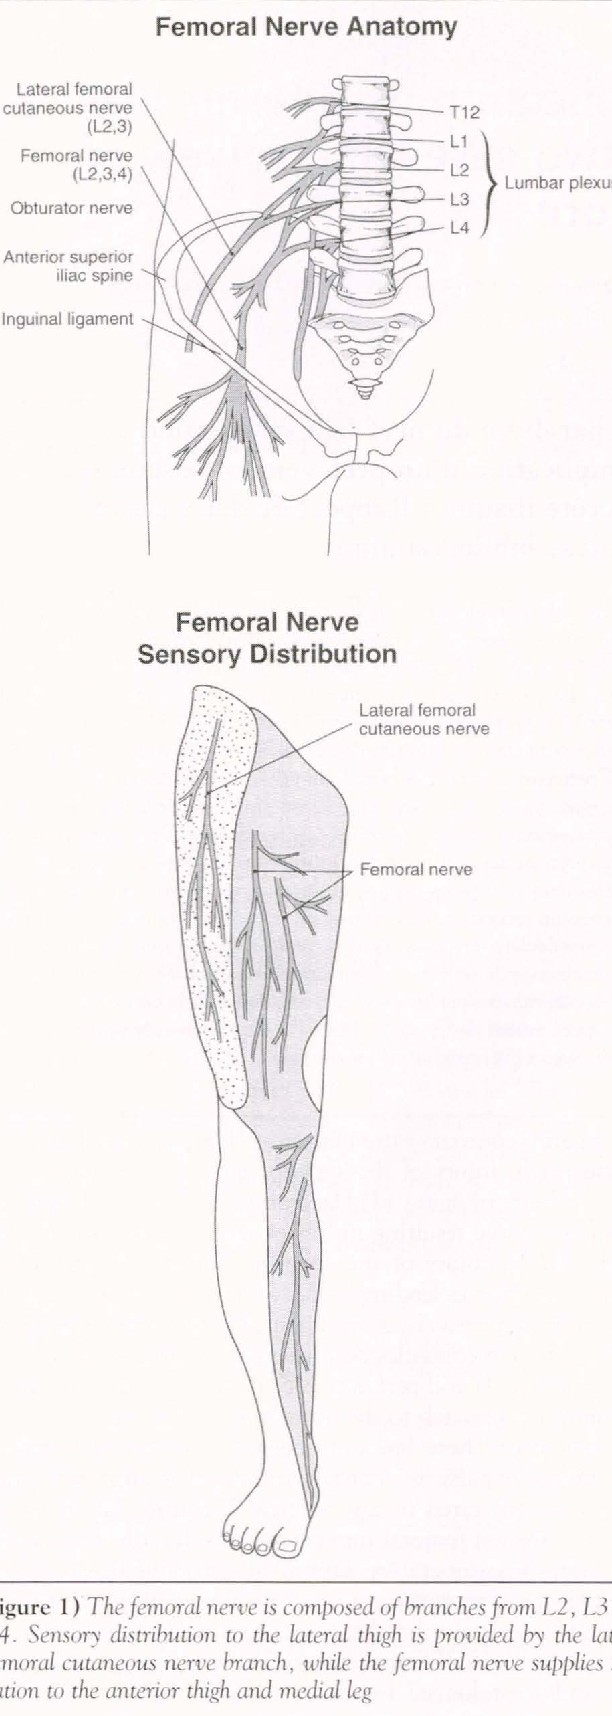 femoral nerve compression - Semantic Scholar